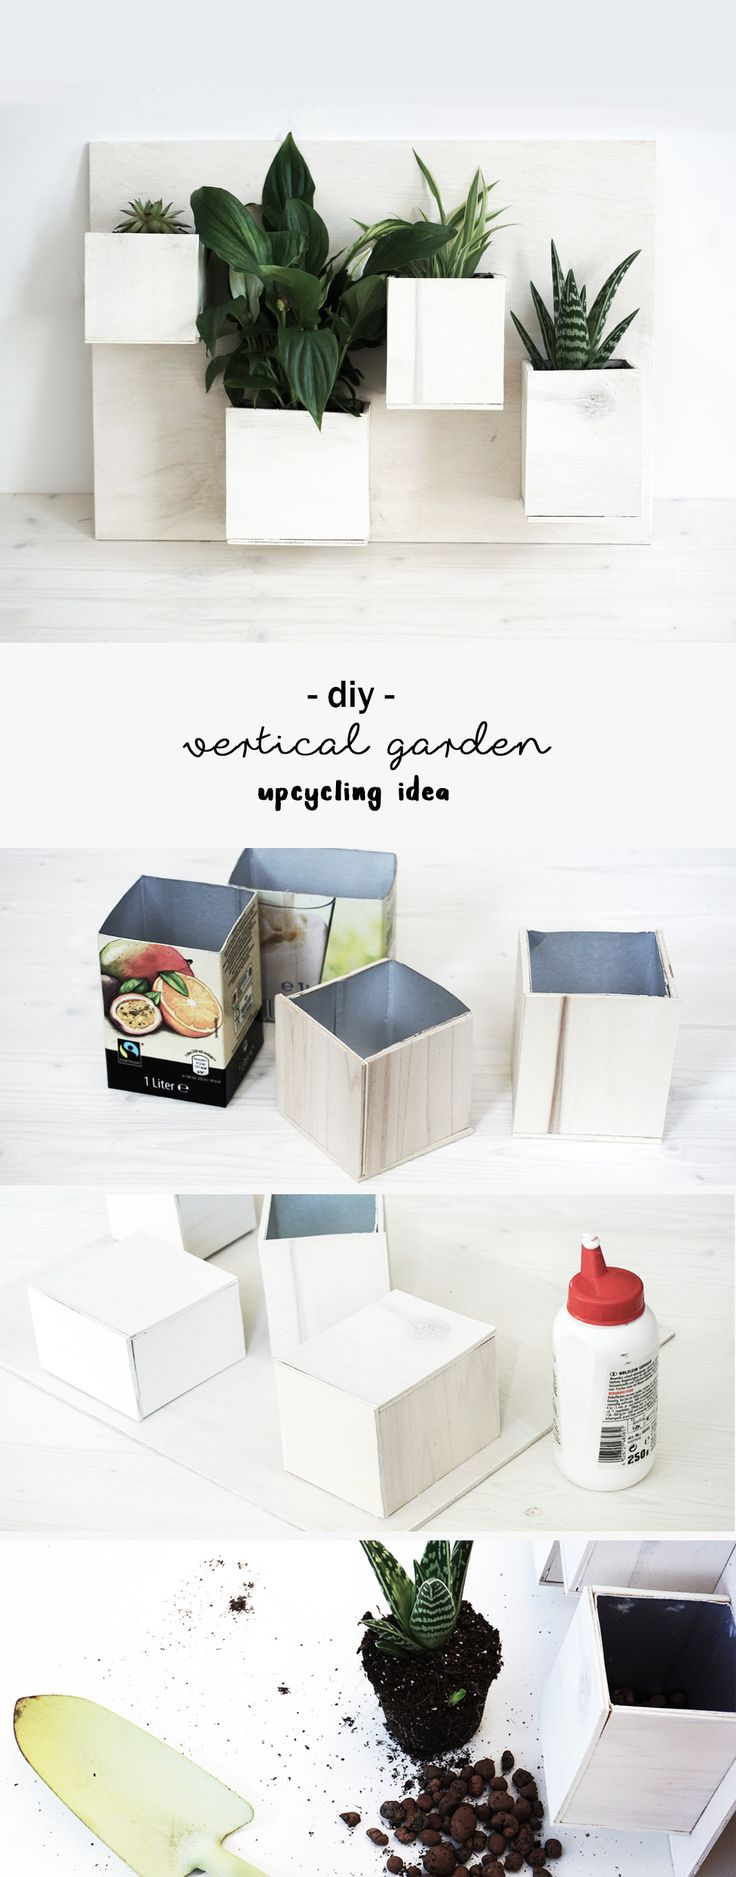 DIY Upcycling Idee Bild aus Pflanzen, hergestellt aus leeren Getränkekartons und Sperrholz | Holz | Do it yourself | Tetrapak | vertikaler Garten | grün | Sukkulenten | Urban Jungle Bloggers | basteln | Deko | Wand Begrünung | grüner Daumen | Nachhaltigkeit | nachhaltig | Recycling | Idee | Anleitung | Tutorial | kreativ | wood | Bild | Pflanzenbild | Geschenk | Geschenkidee | gift | plants | wall decoration | green | crafting | upcycling idea | handmade | selbstgemacht | beverage cartons |